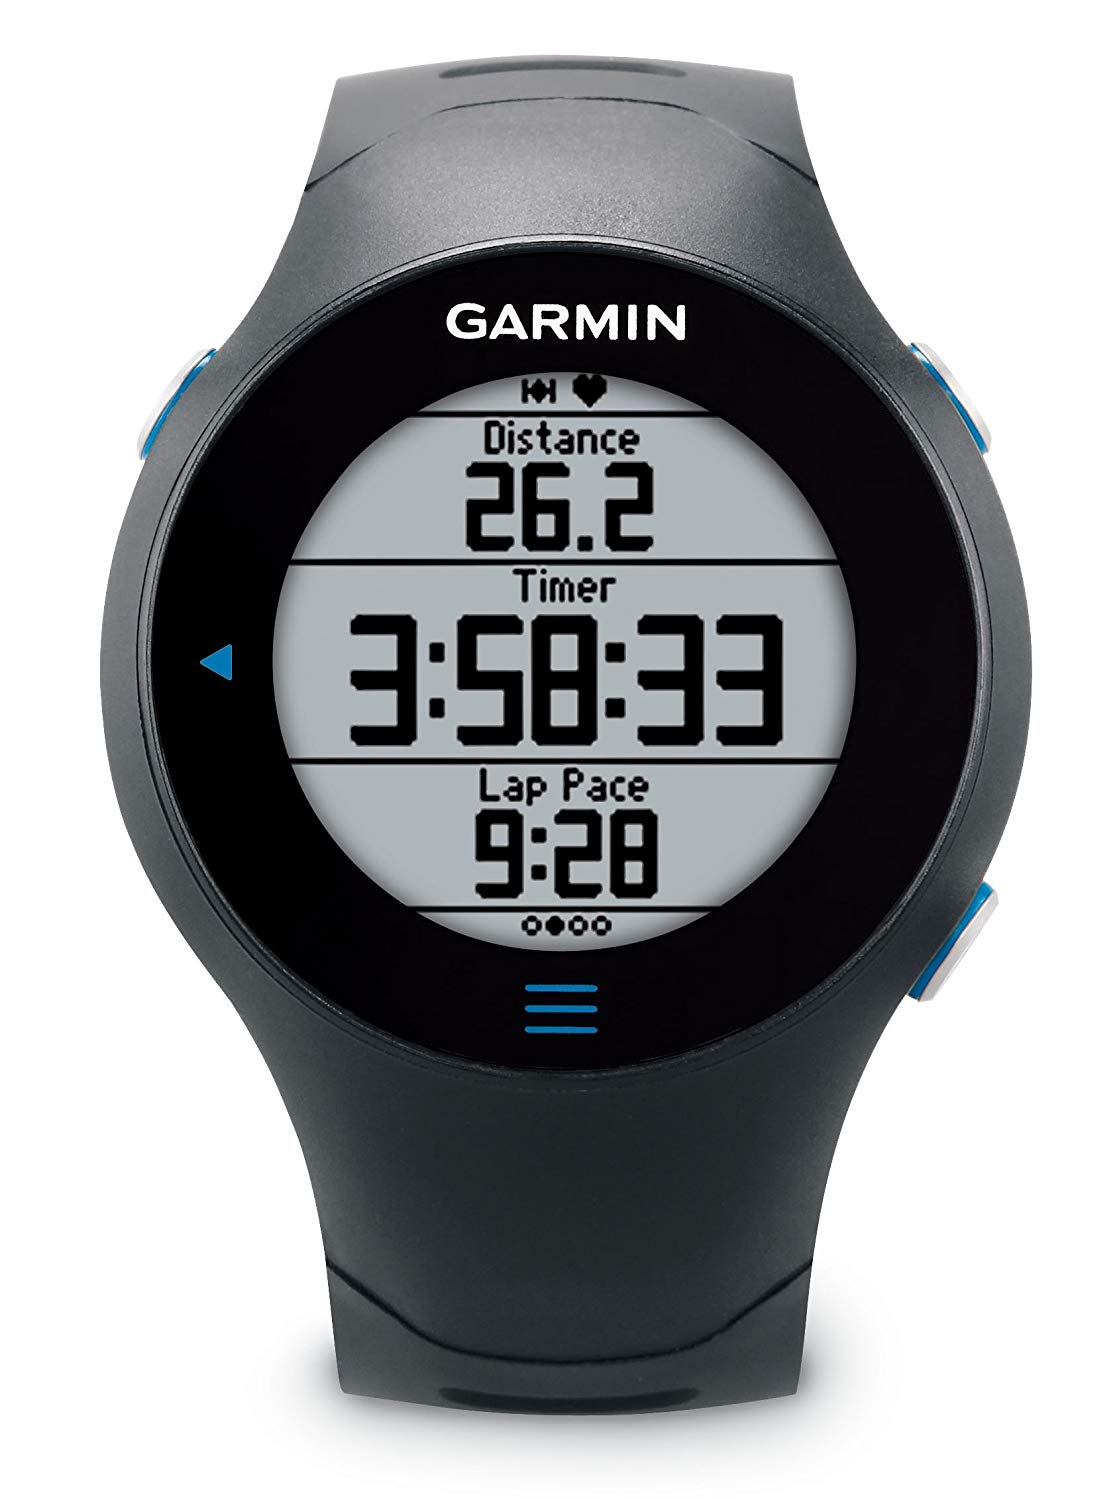 Garmin Forerunner 610 GPS Running Watch with Heart Rate Monitor – Black for £194.95